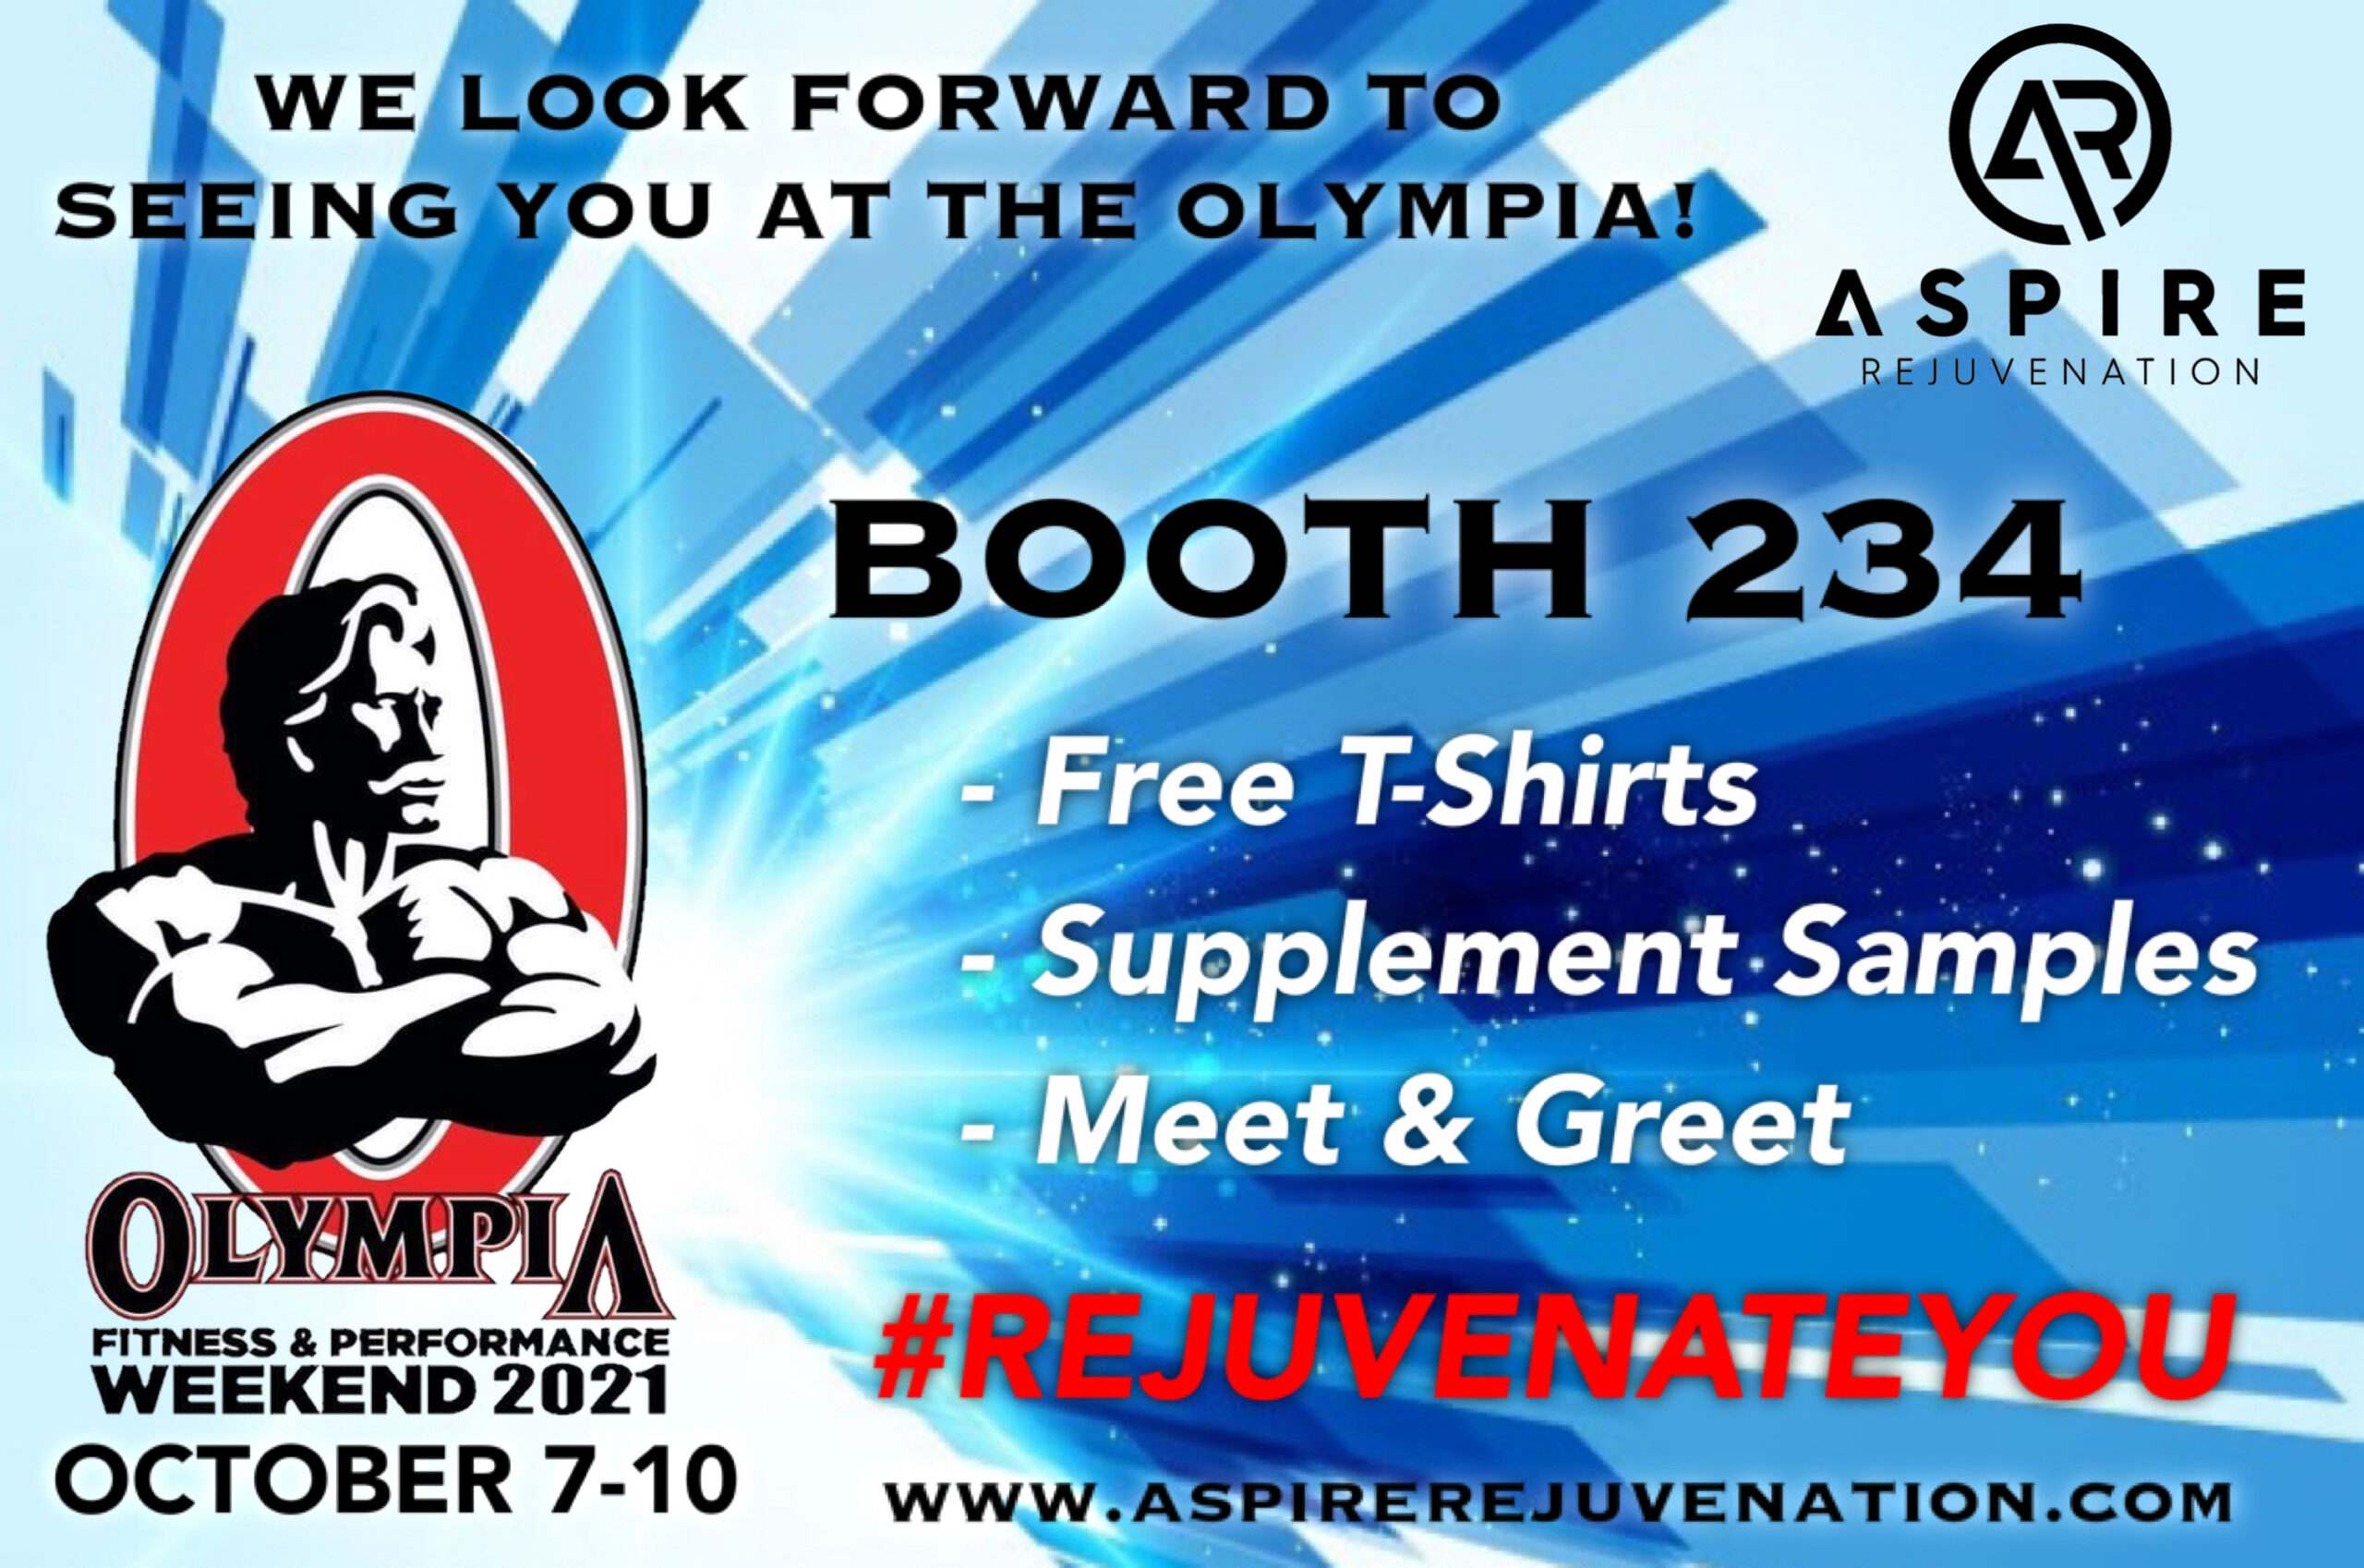 Olympia Fitness & Performance Weekend 2021